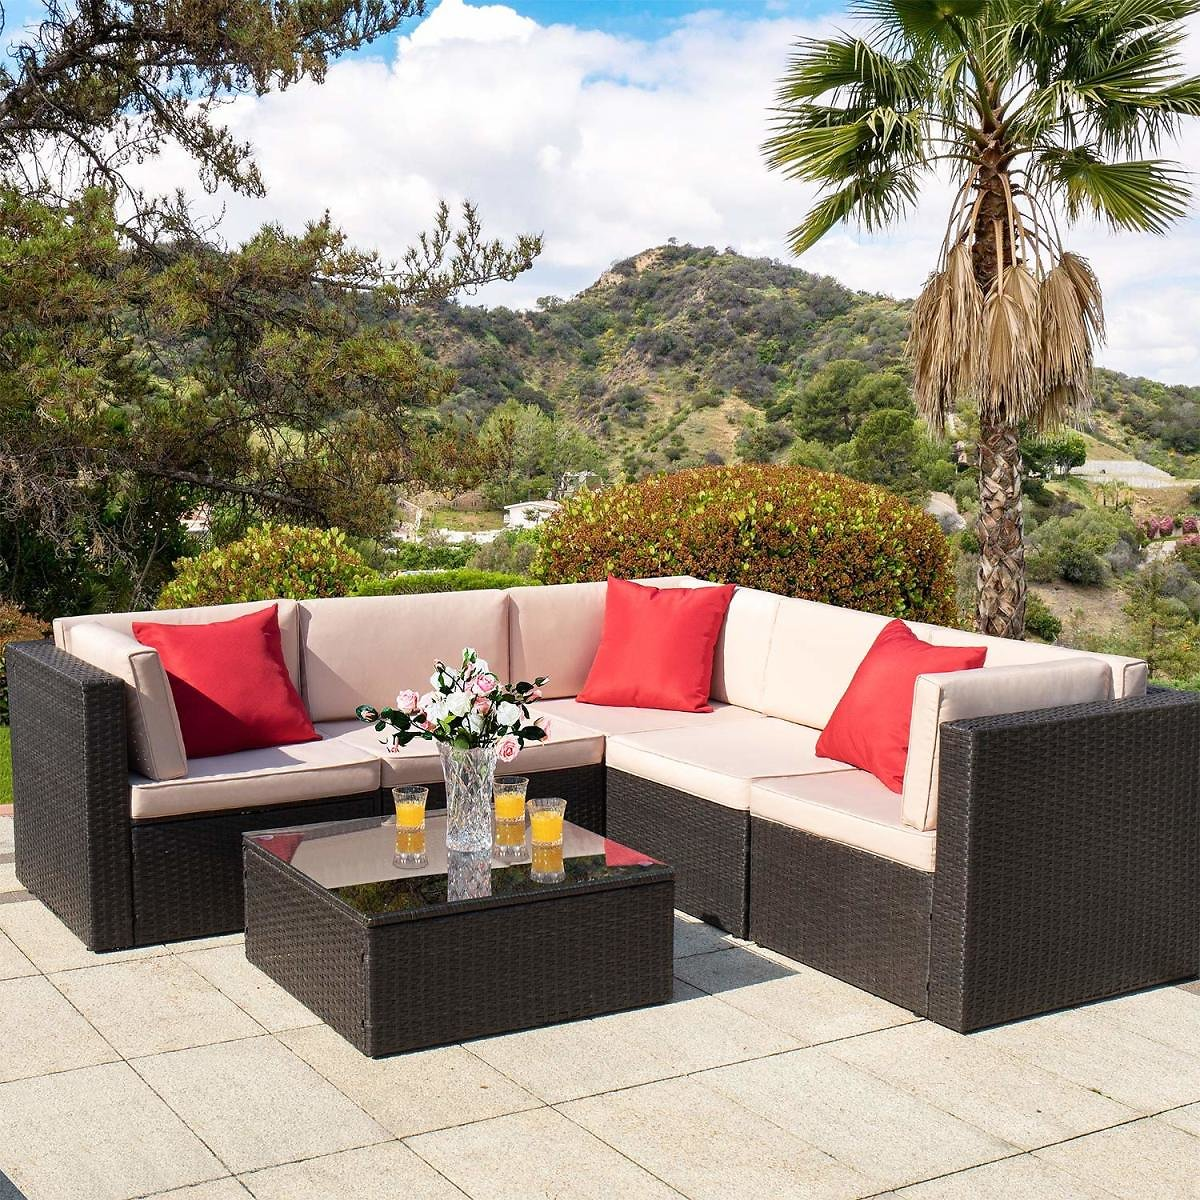 Walnew 6 Pieces Outdoor Furniture Patio Sectional Sofa Sets